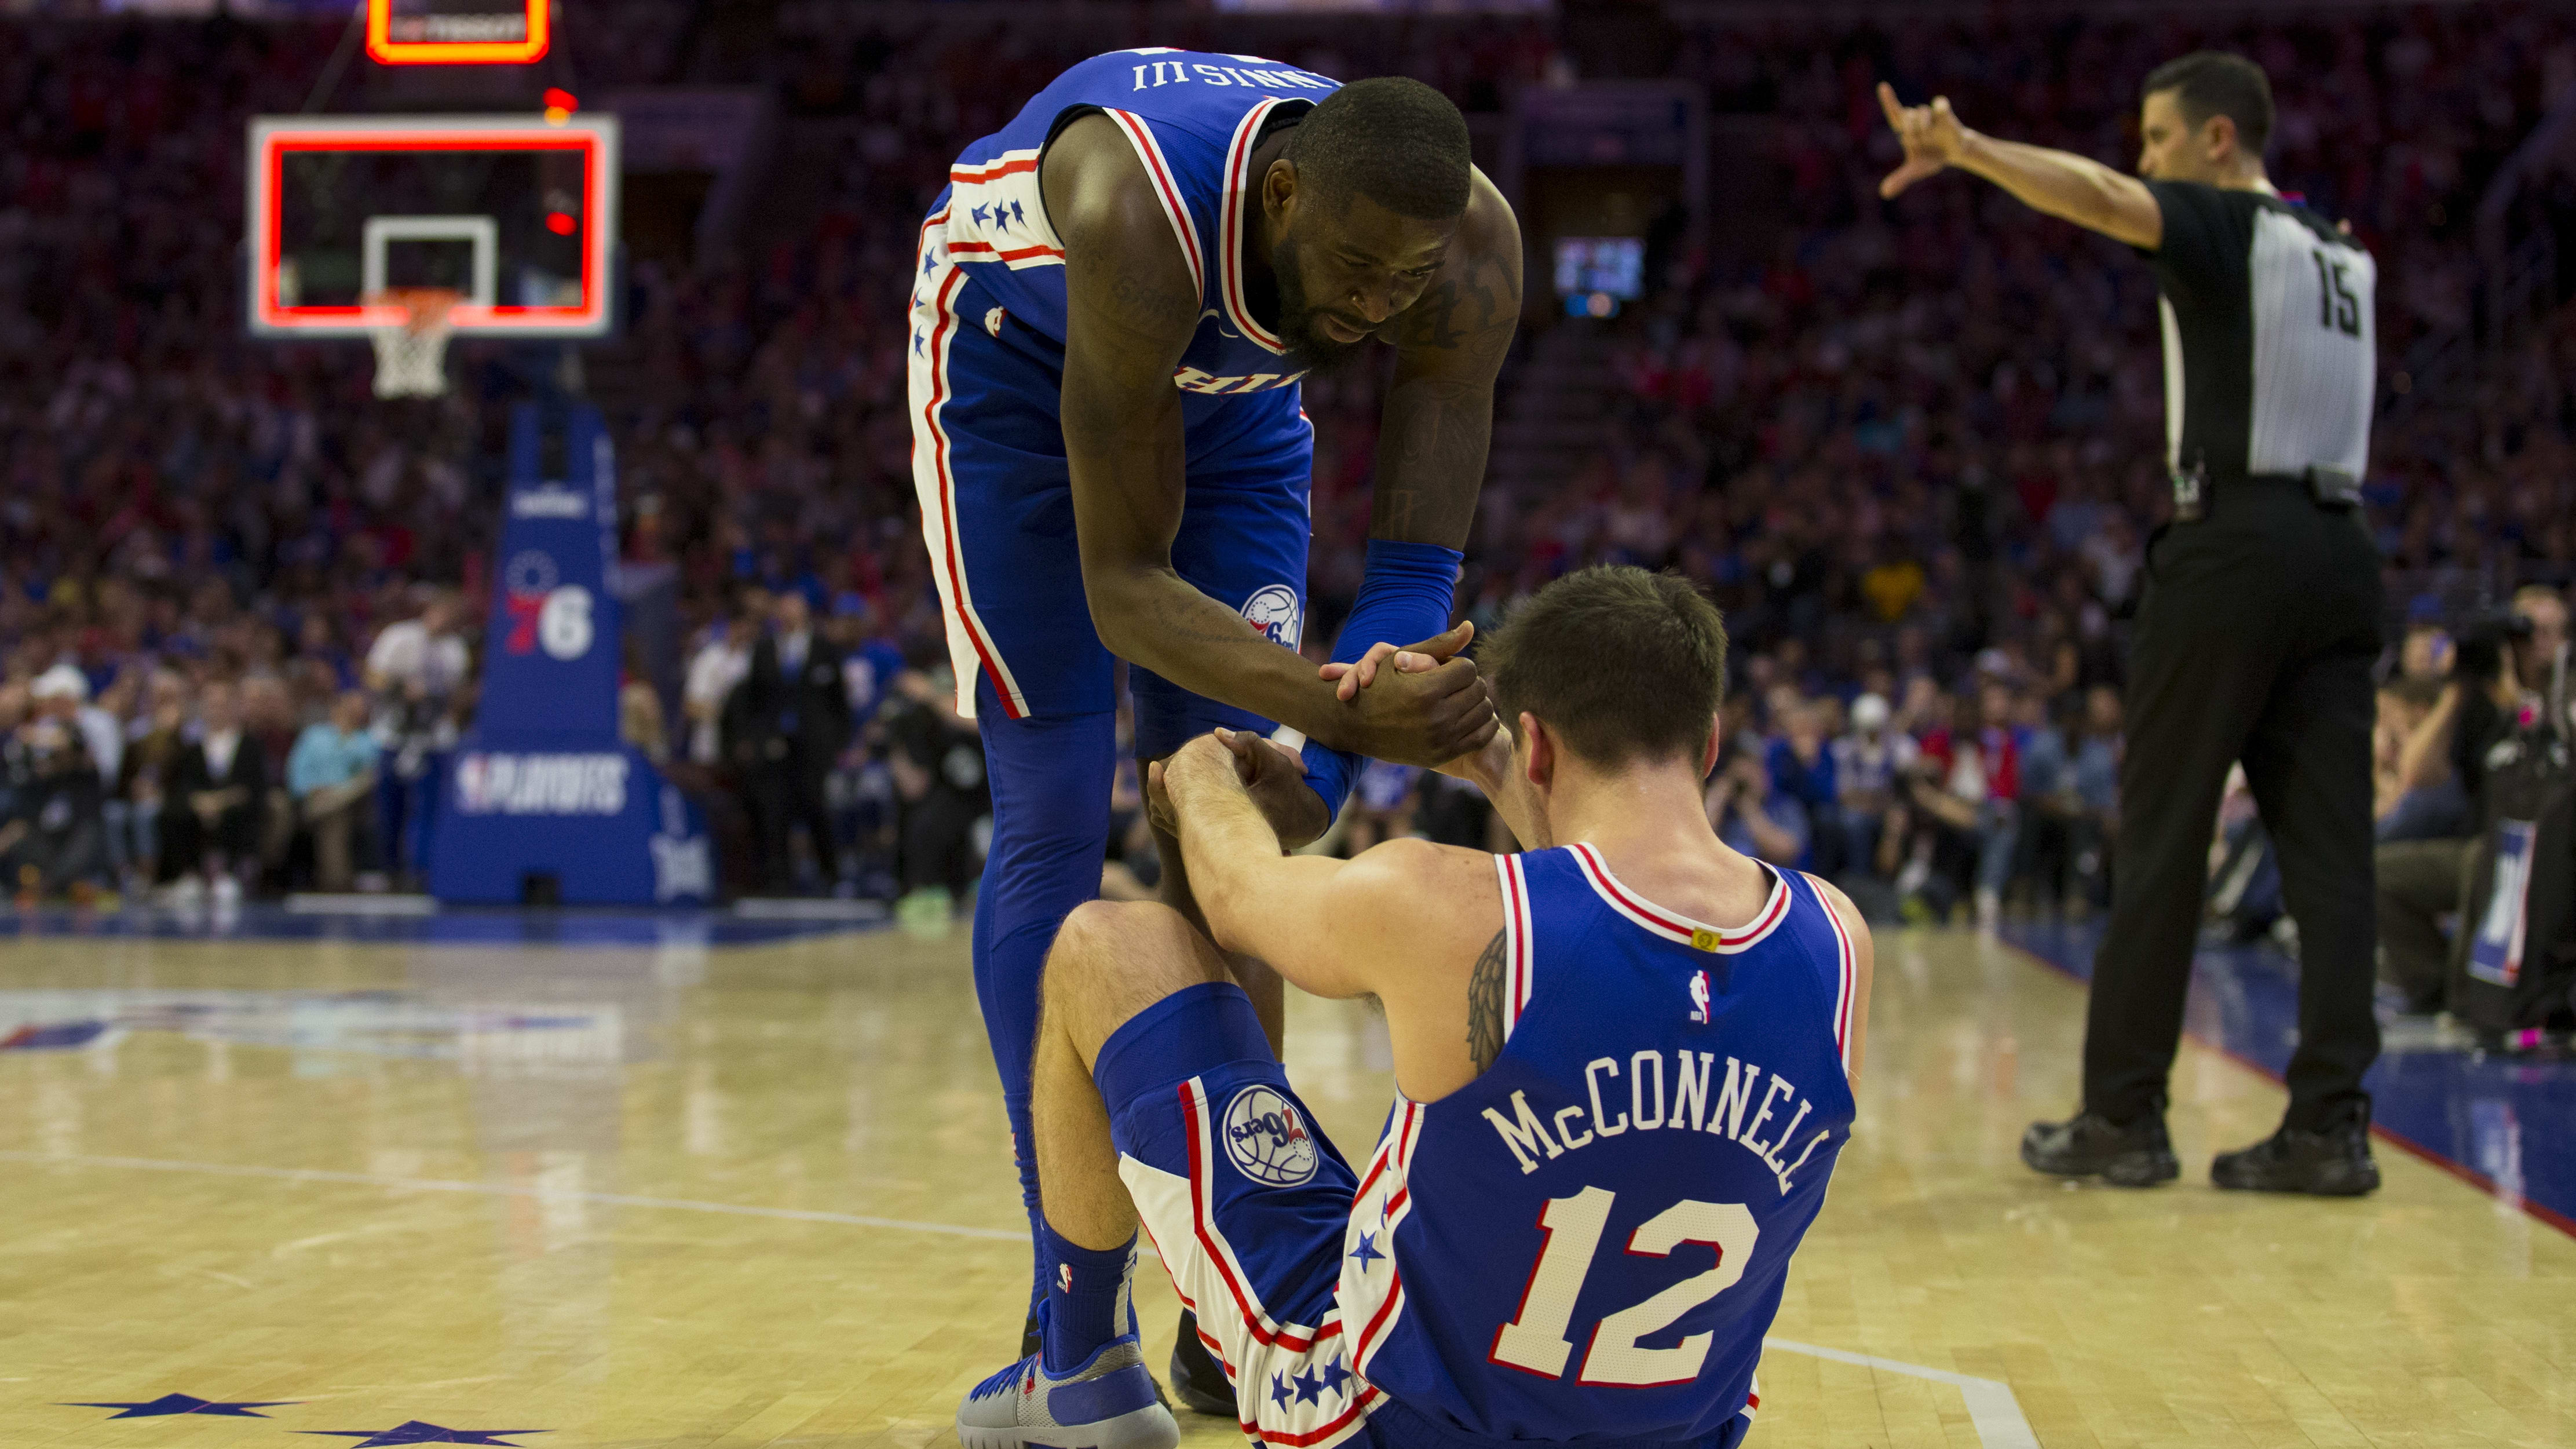 PHILADELPHIA, PA - APRIL 23: James Ennis III #11 of the Philadelphia 76ers helps T.J. McConnell #12 off the floor against the Brooklyn Nets in Game Five of Round One of the 2019 NBA Playoffs at the Wells Fargo Center on April 23, 2019 in Philadelphia, Pennsylvania. NOTE TO USER: User expressly acknowledges and agrees that, by downloading and or using this photograph, User is consenting to the terms and conditions of the Getty Images License Agreement. (Photo by Mitchell Leff/Getty Images)